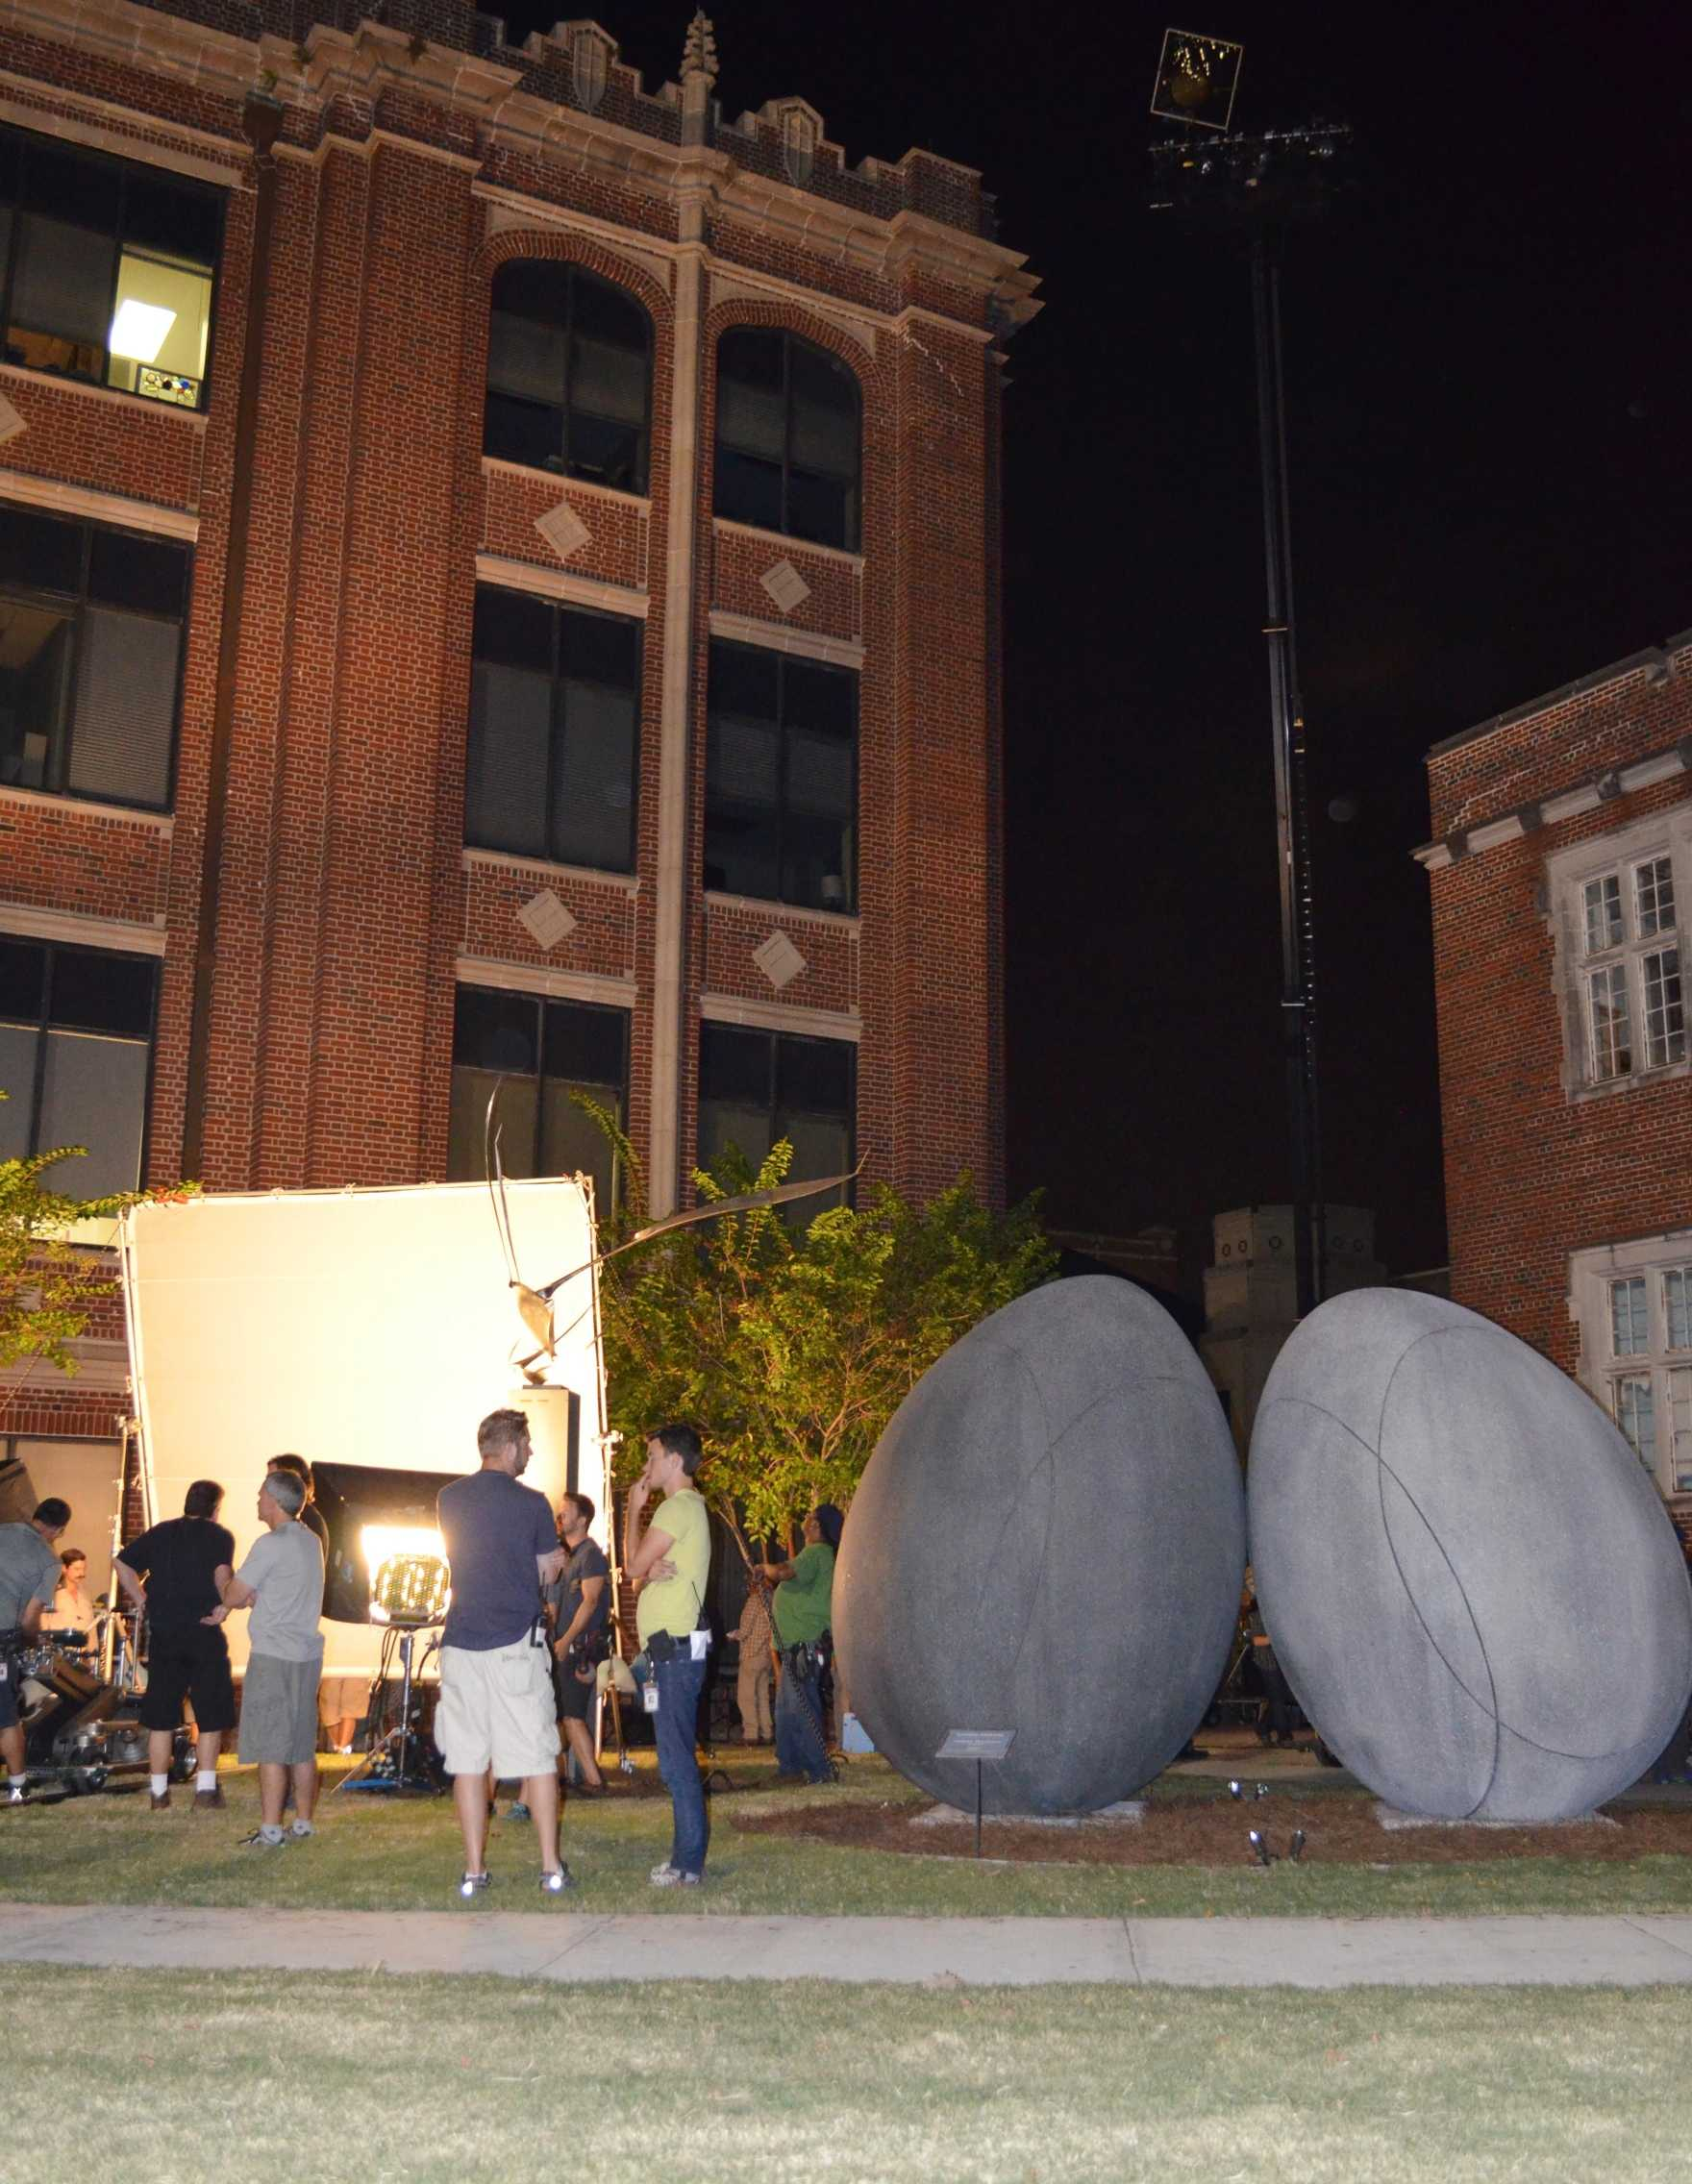 """22 Jump Street"" film crew sets up and tests lighting for upcoming scenes featuring Jonah Hill in Loyola's sculpture garden on Tuesday, Oct. 22. The ""22 Jump Street"" crew came on Monday, Oct. 21 to set up new sculptures and make changes to the area including installing the ""Leaning Embryos."""